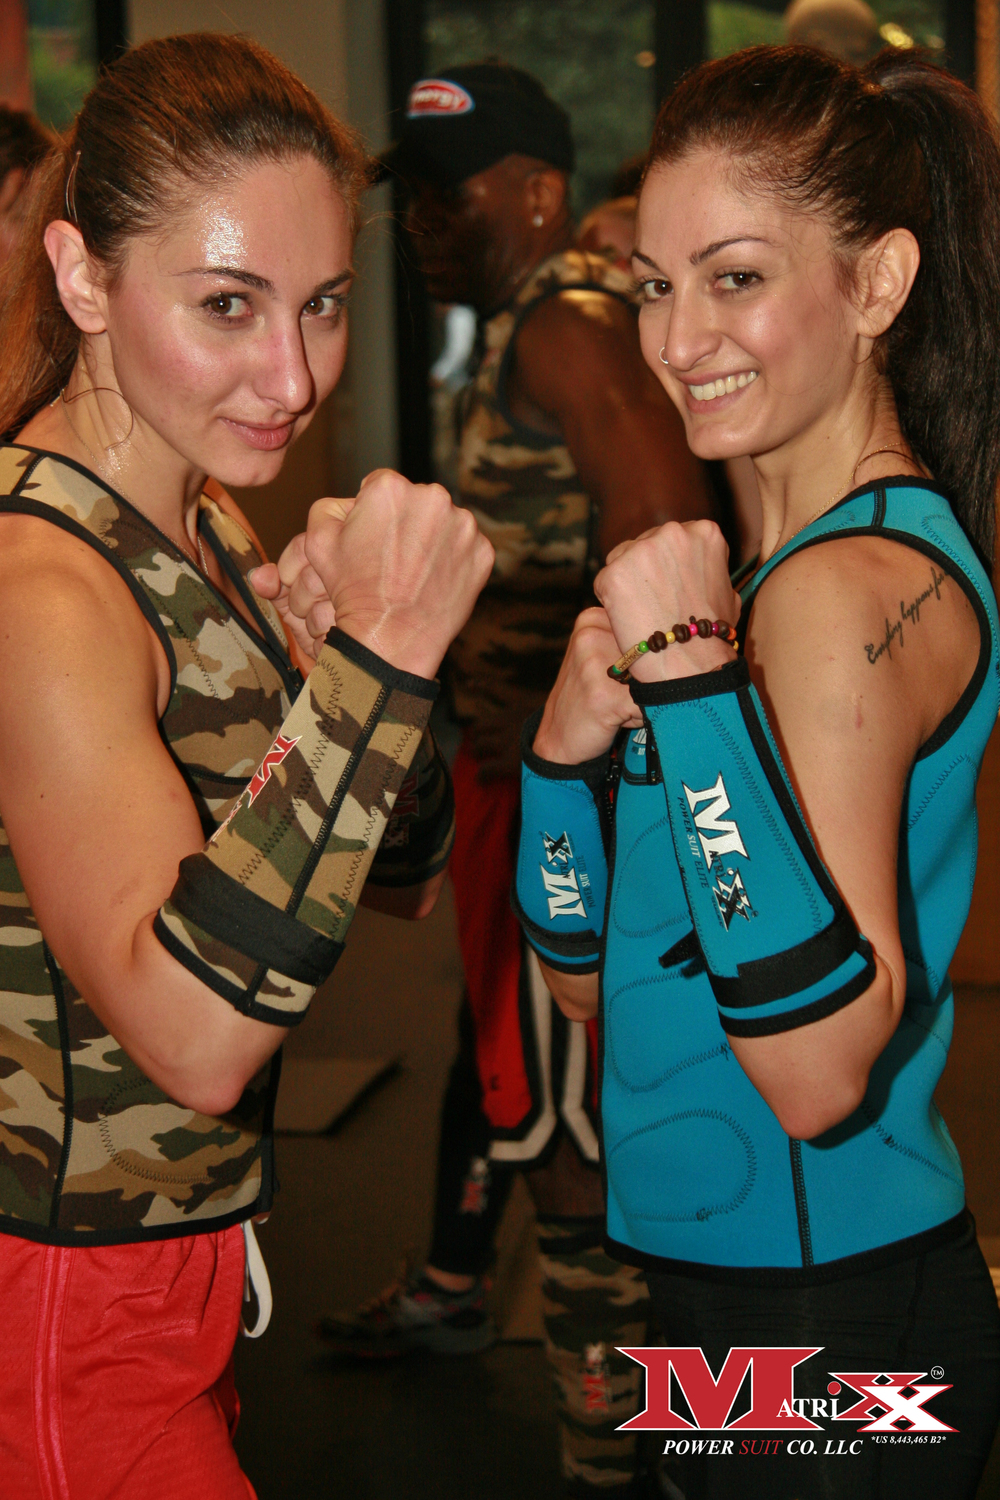 Rika & Eirini guns photo.jpg